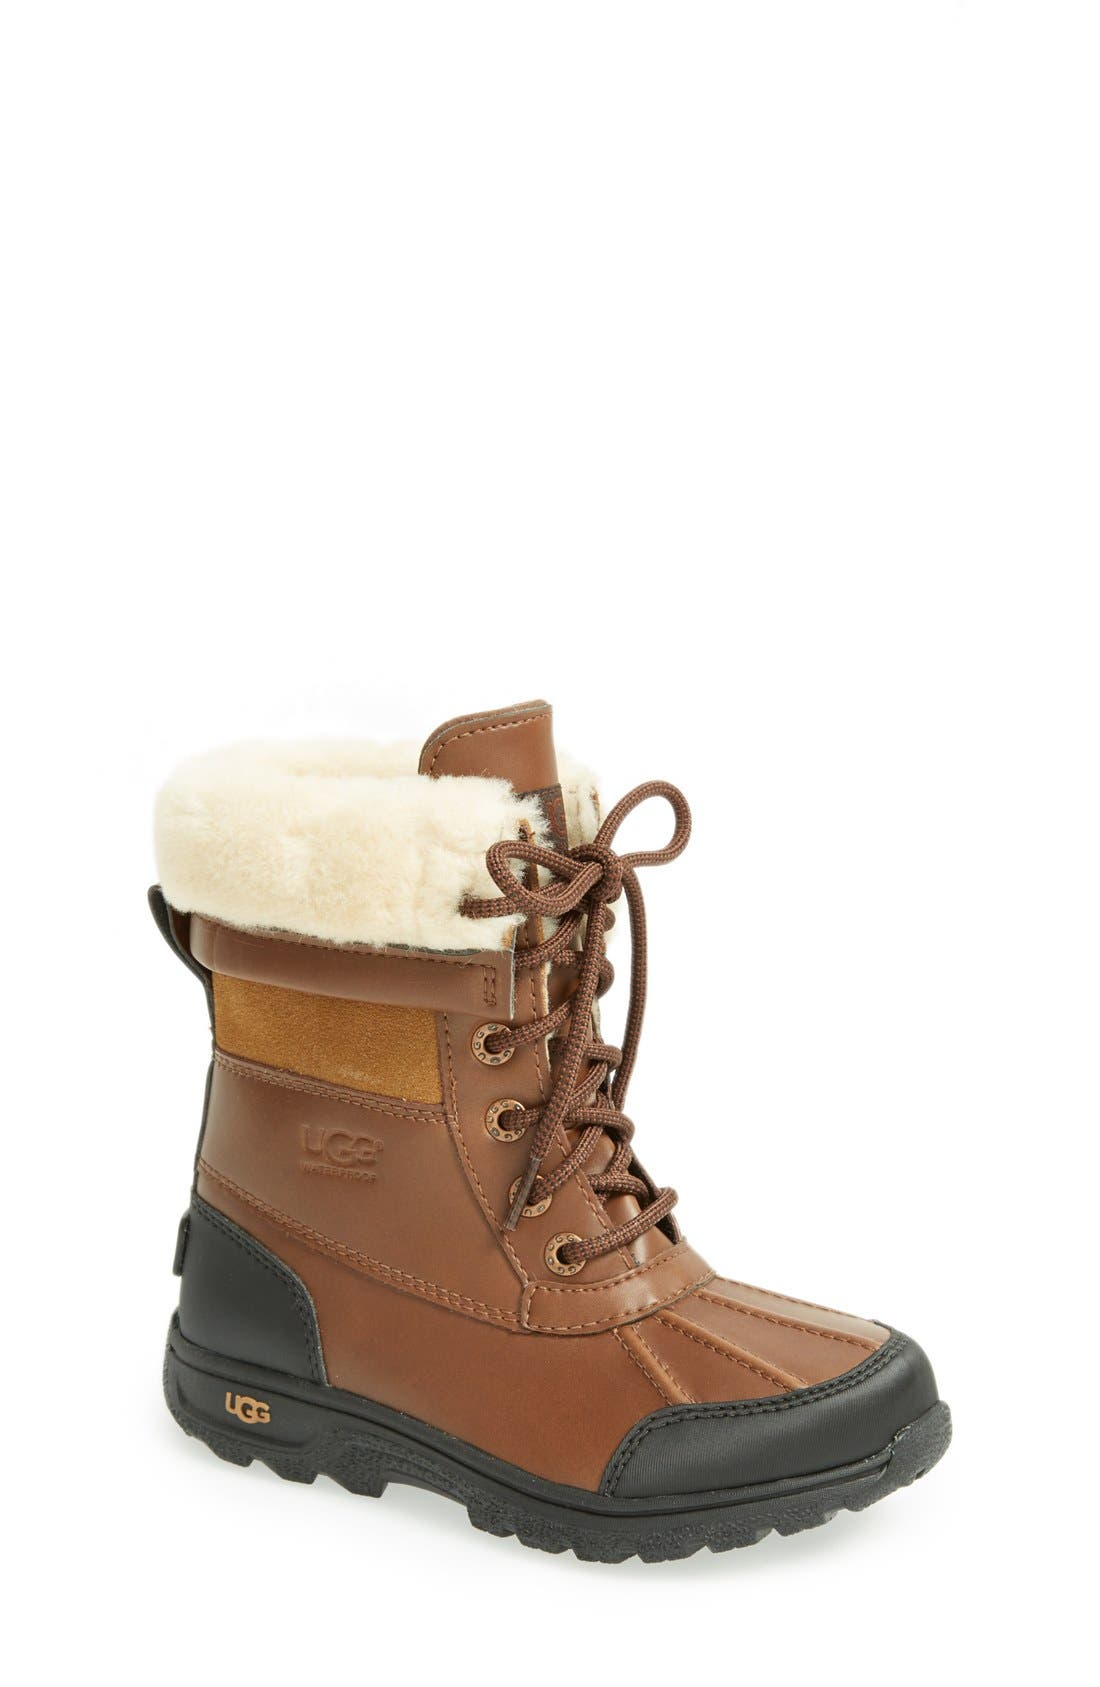 Main Image - UGG® 'Butte II' Waterproof Leather Boot (Little Kid & Big Kid)